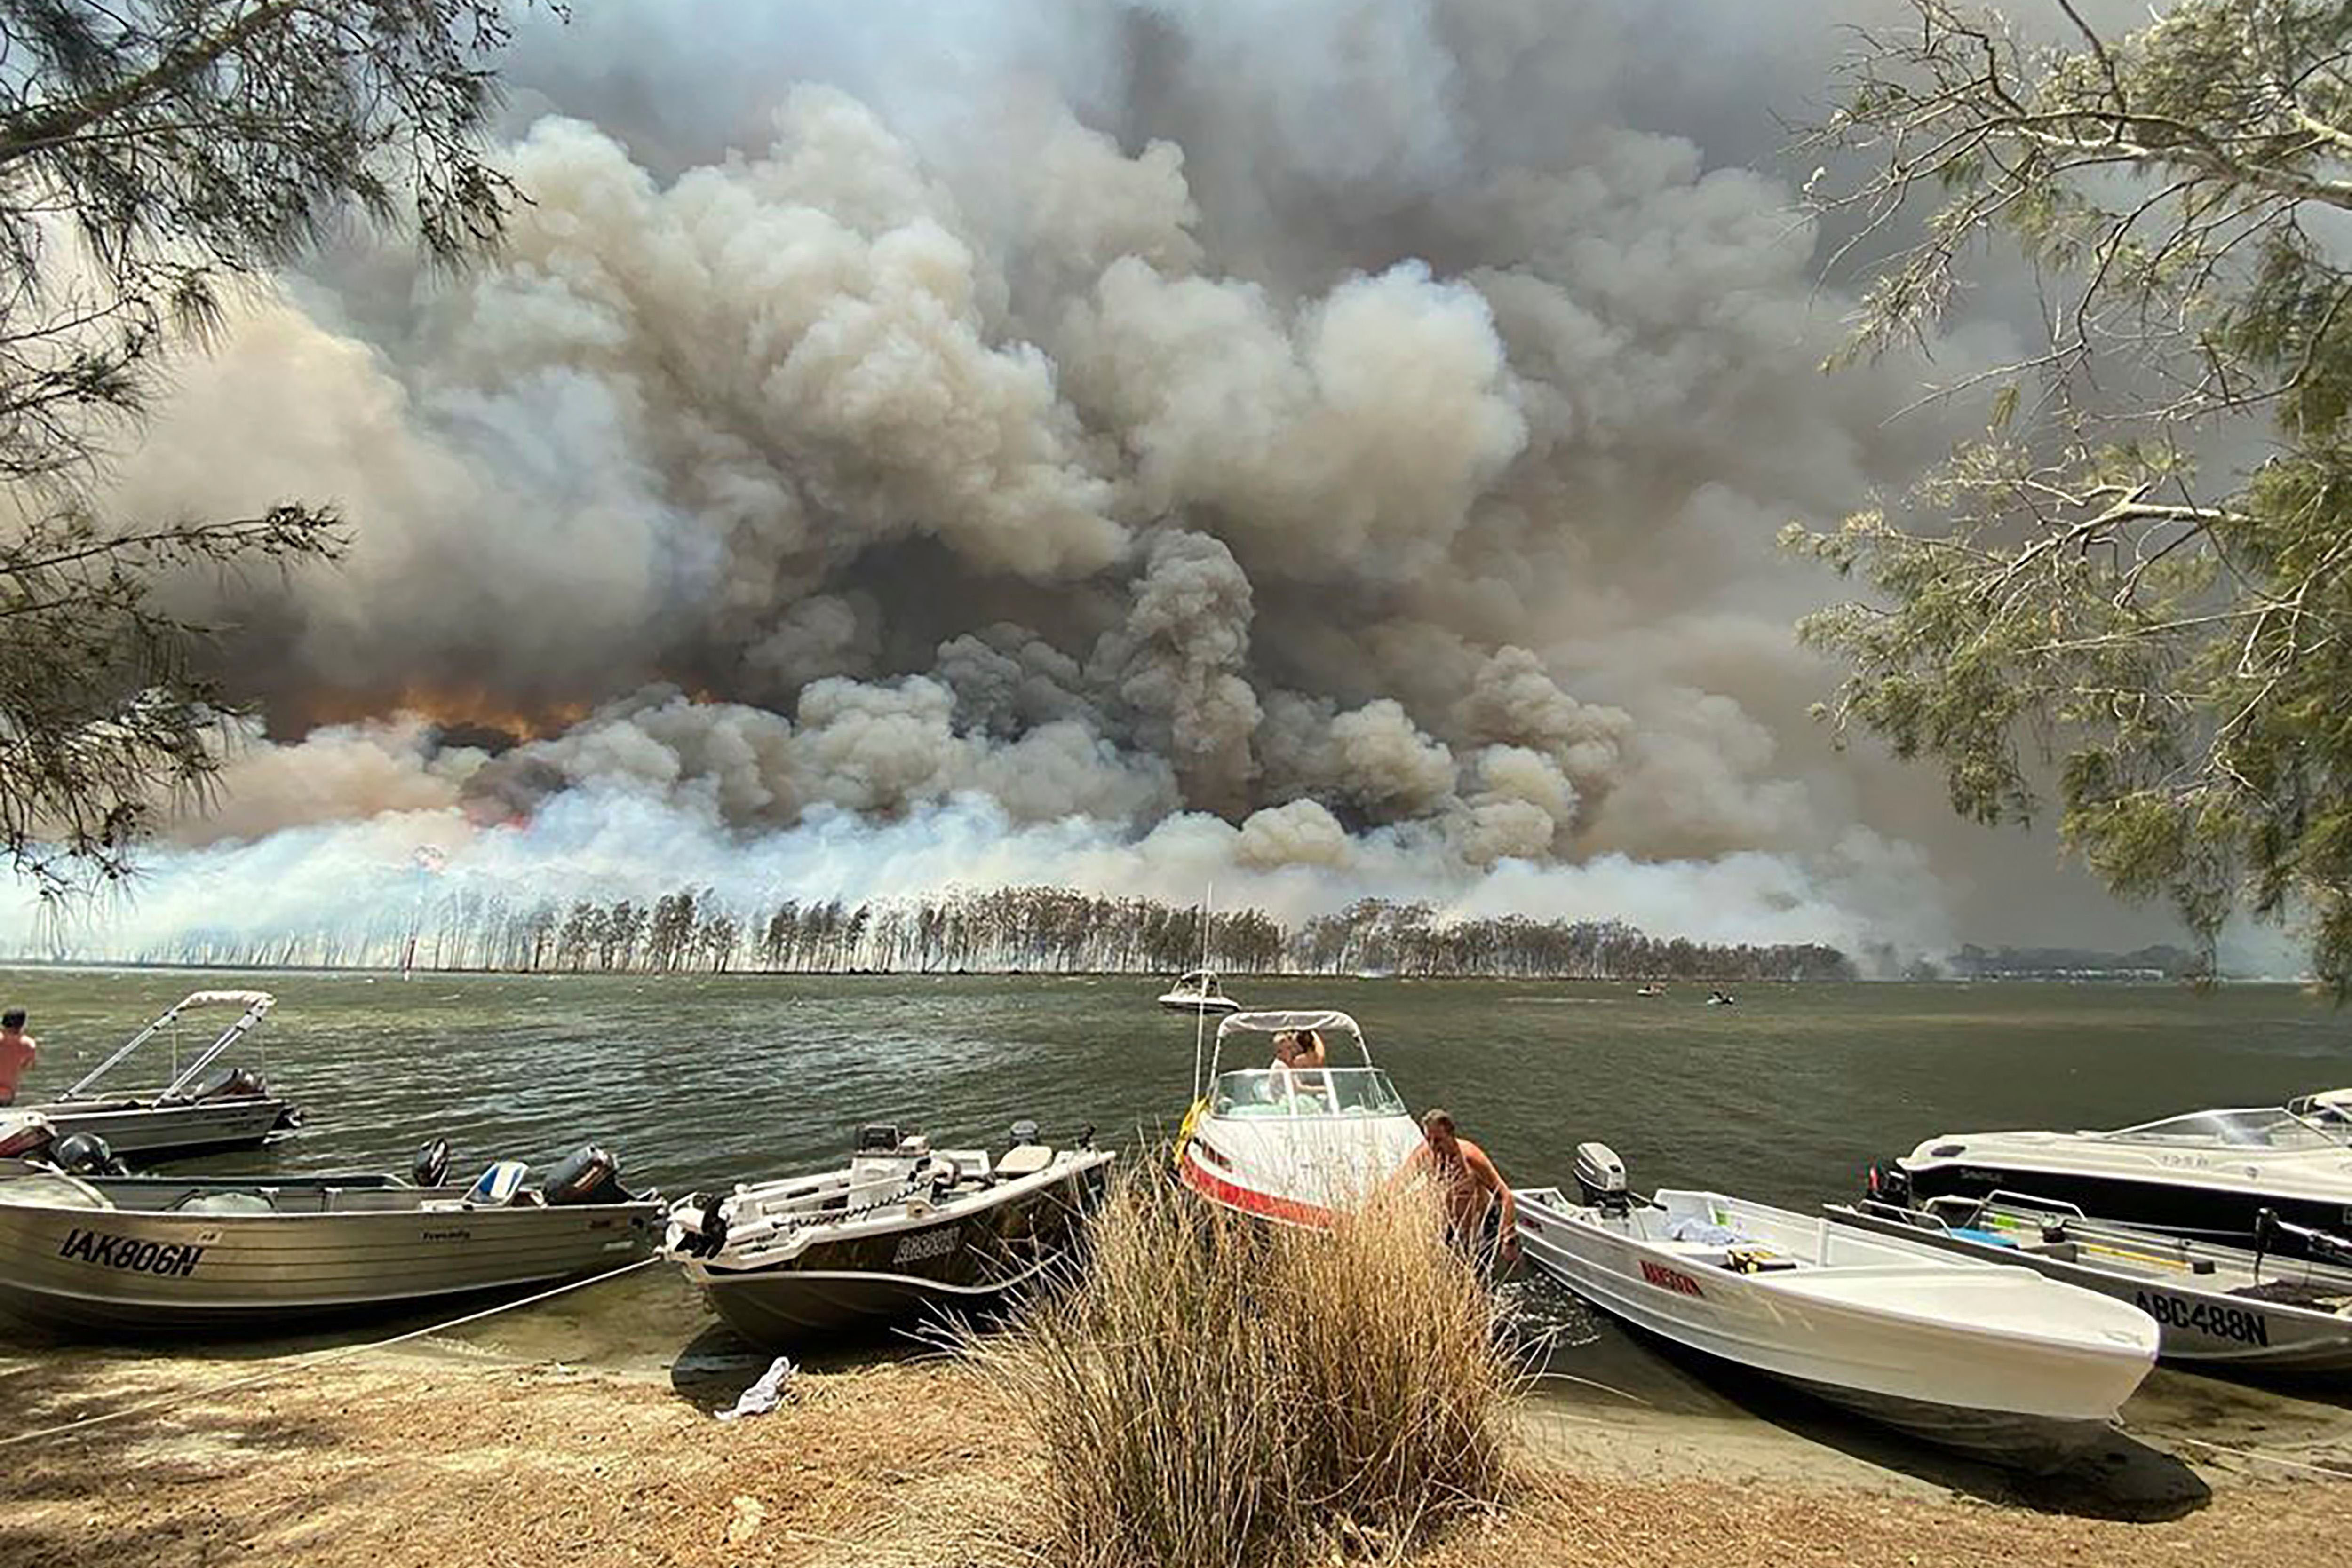 Boats are pulled ashore as smoke and wildfires rage behind Lake Conjola, Australia, . Thousands of tourists fled Australia's wildfire-ravaged eastern coast Thursday ahead of worsening conditions as the military started to evacuate people trapped on the shore further southWildfires, Conjola, Australia - 02 Jan 2020